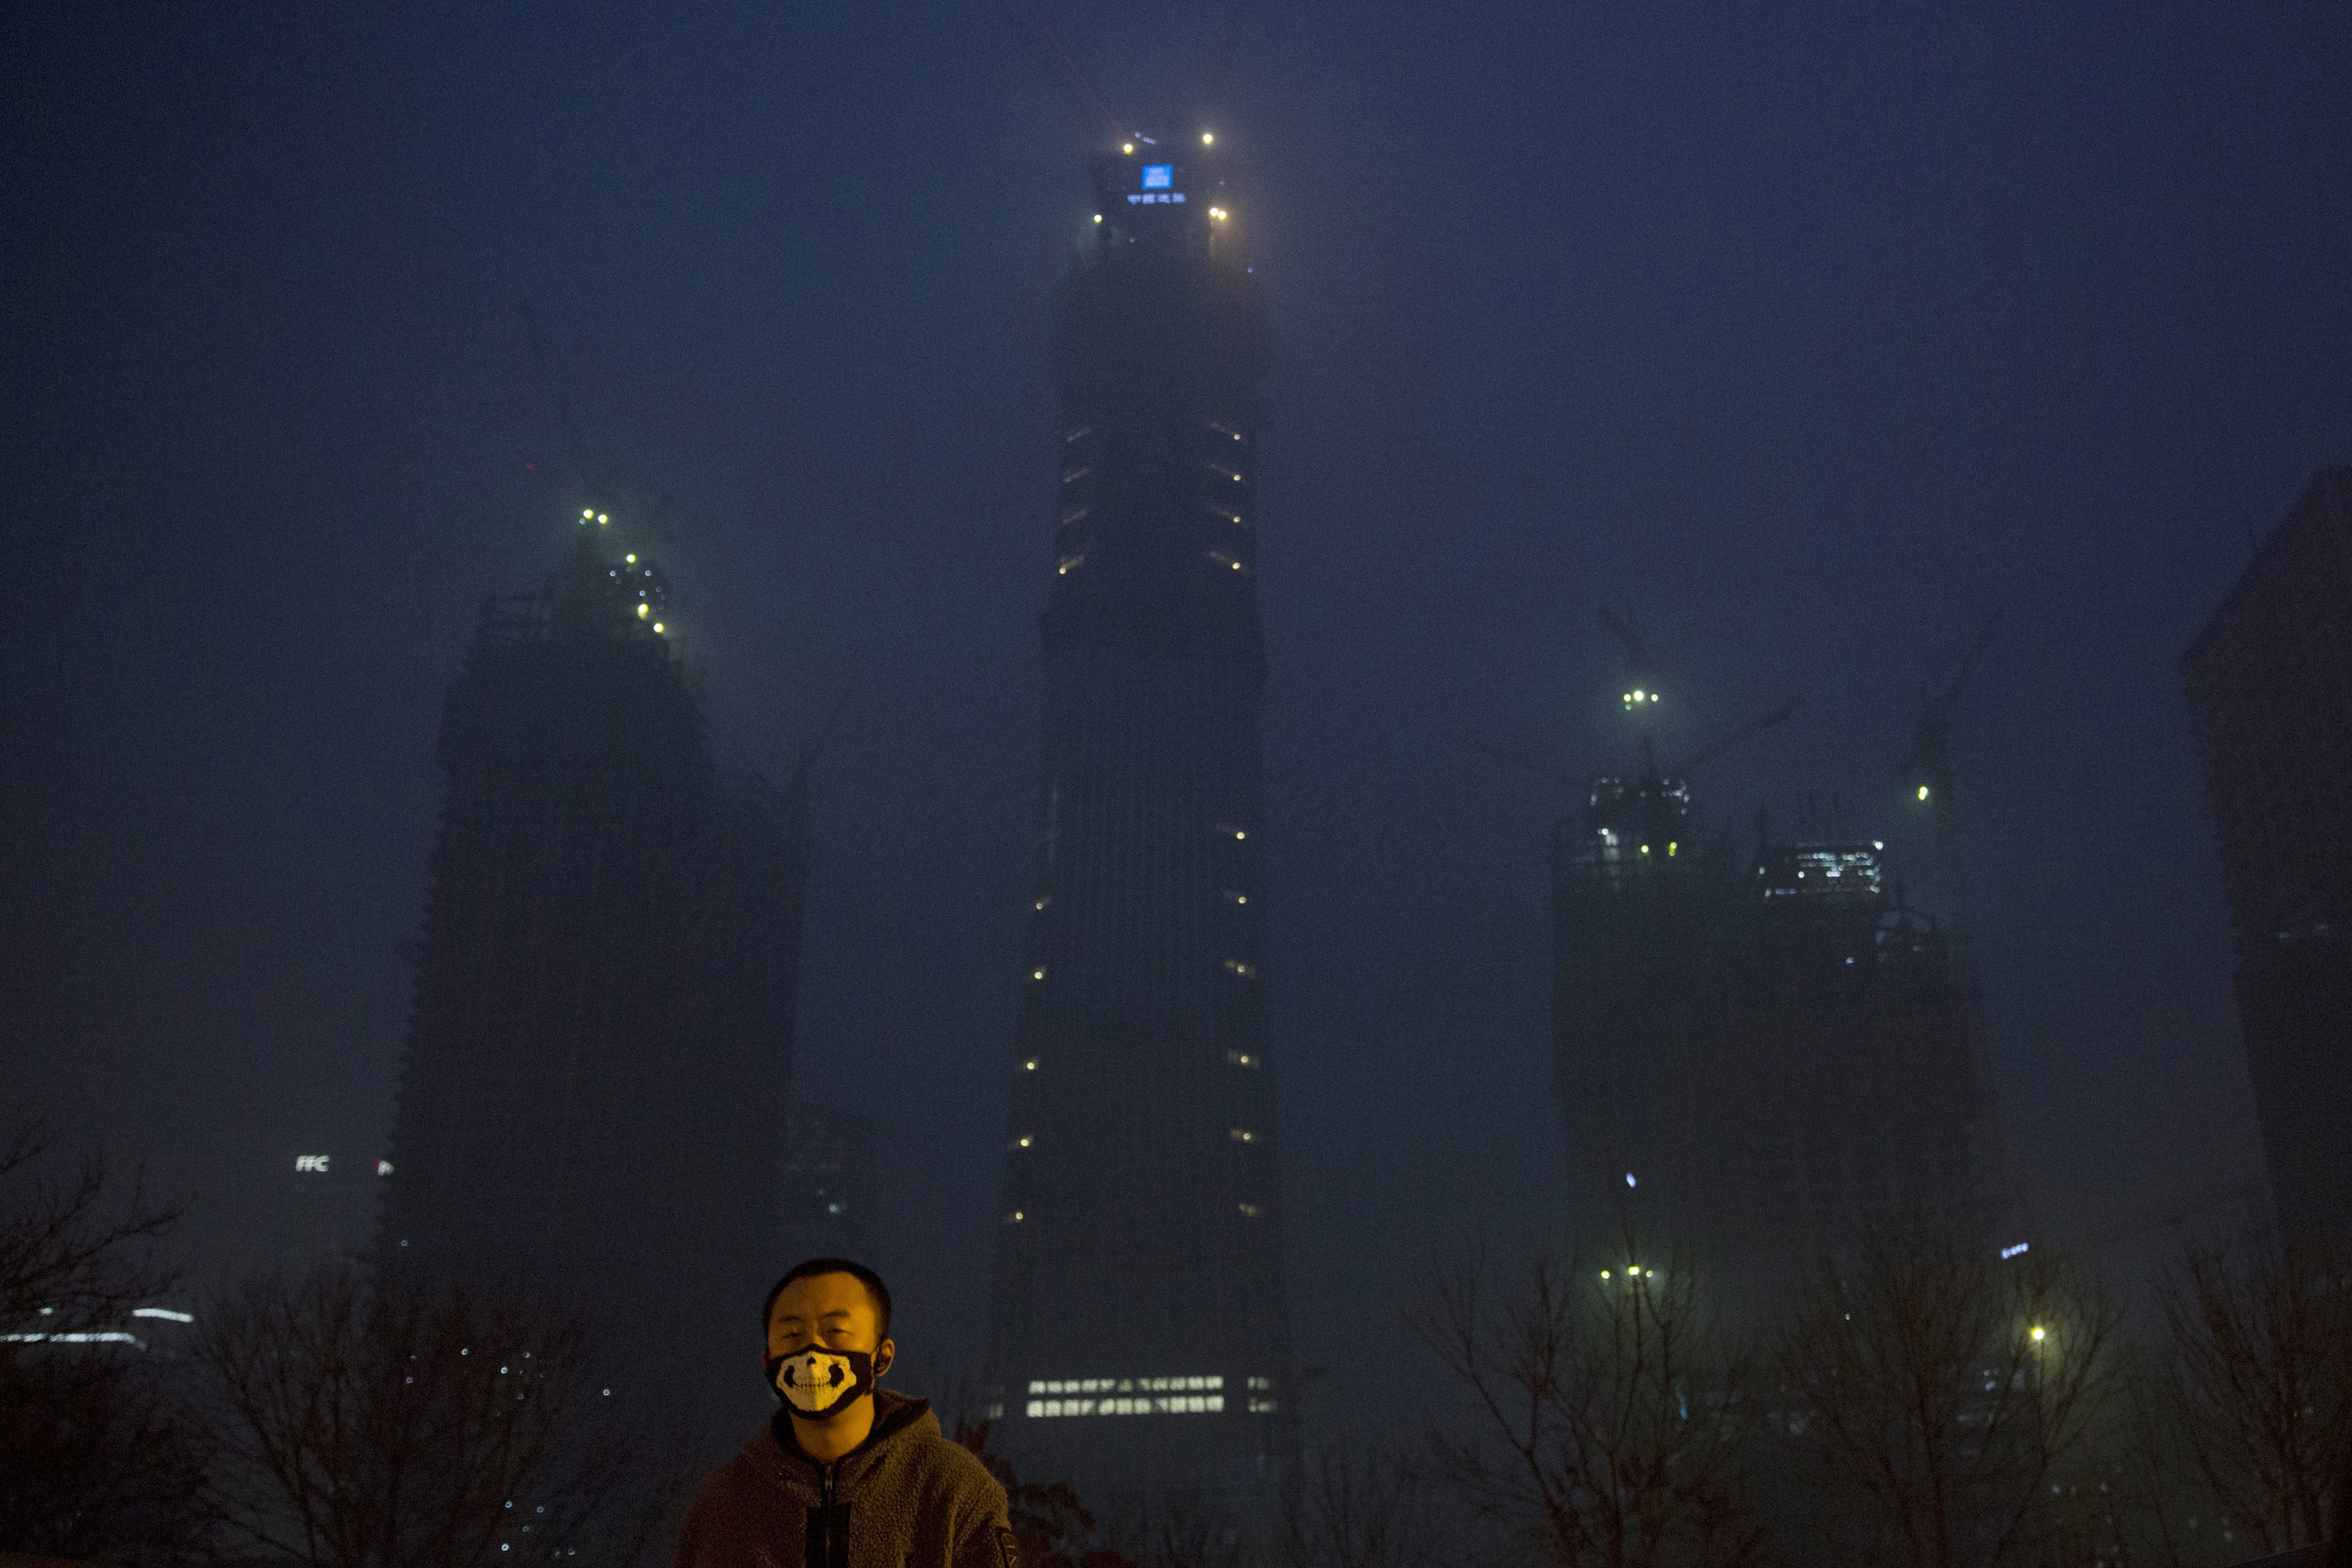 A man wears a mask with a skeleton design near the smoggy night scene of the Central Business District under construction in Beijing, China on Dec.21, 2016. Chinese weather forecasters and state media say the dense, gray smog that has smothered much of China, closing schools and grounding planes, may finally soon give way. (AP Photo/Ng Han Guan)